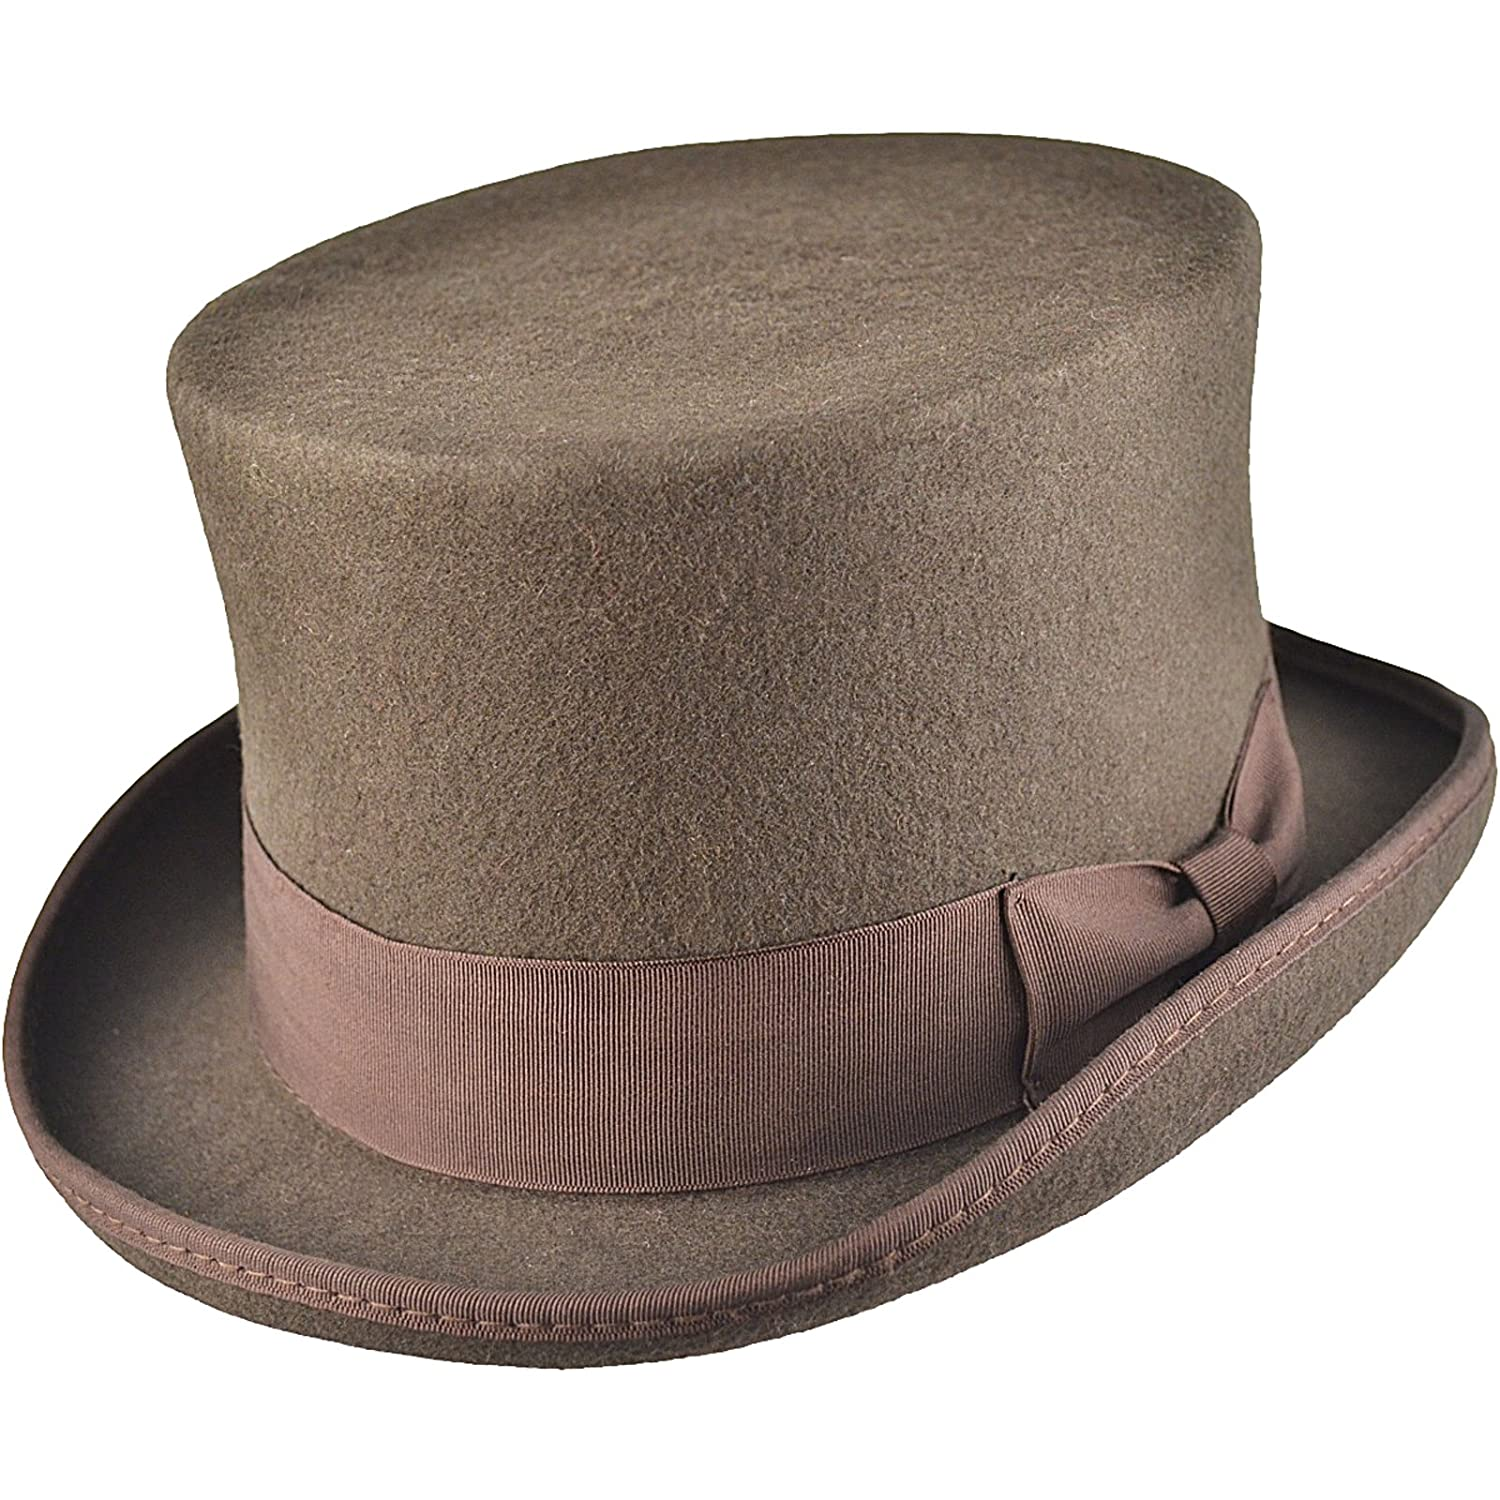 HIGH QUALITY 100% WOOL TOP HAT --- SATIN LINED --- BOXED